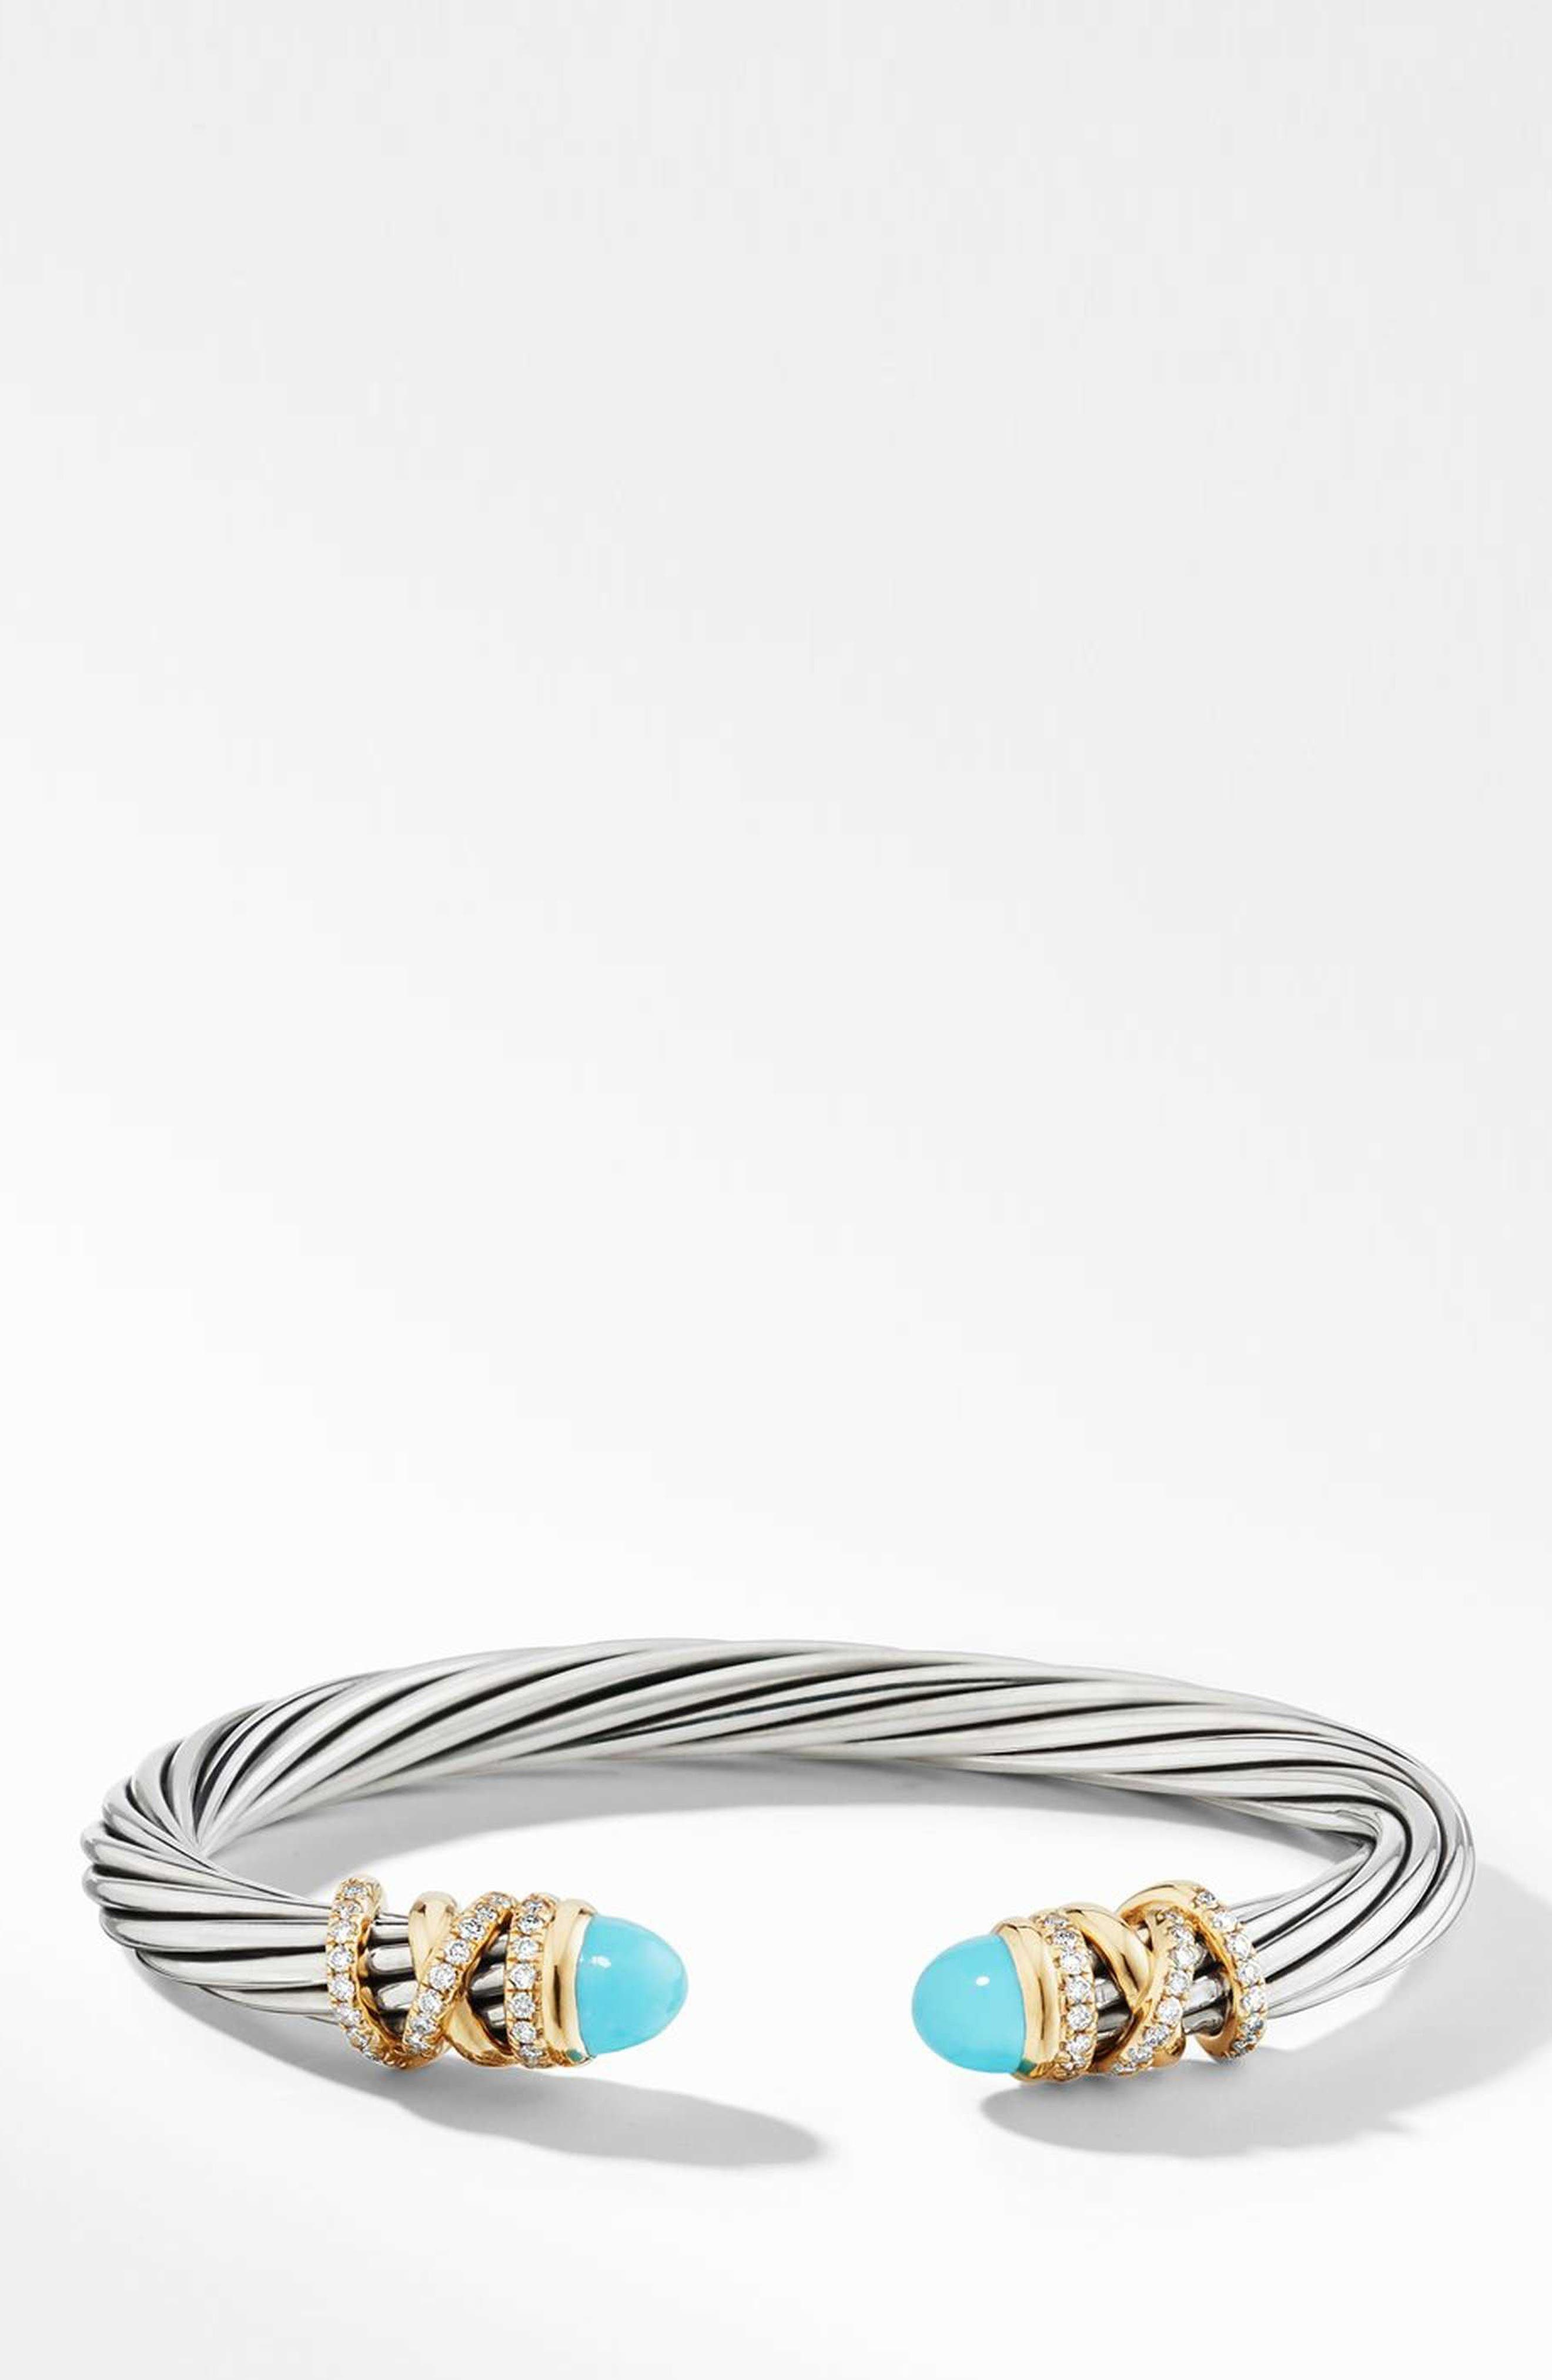 Helena Bracelet with Diamonds,                             Main thumbnail 1, color,                             GOLD/ SILVER/ TURQUOISE